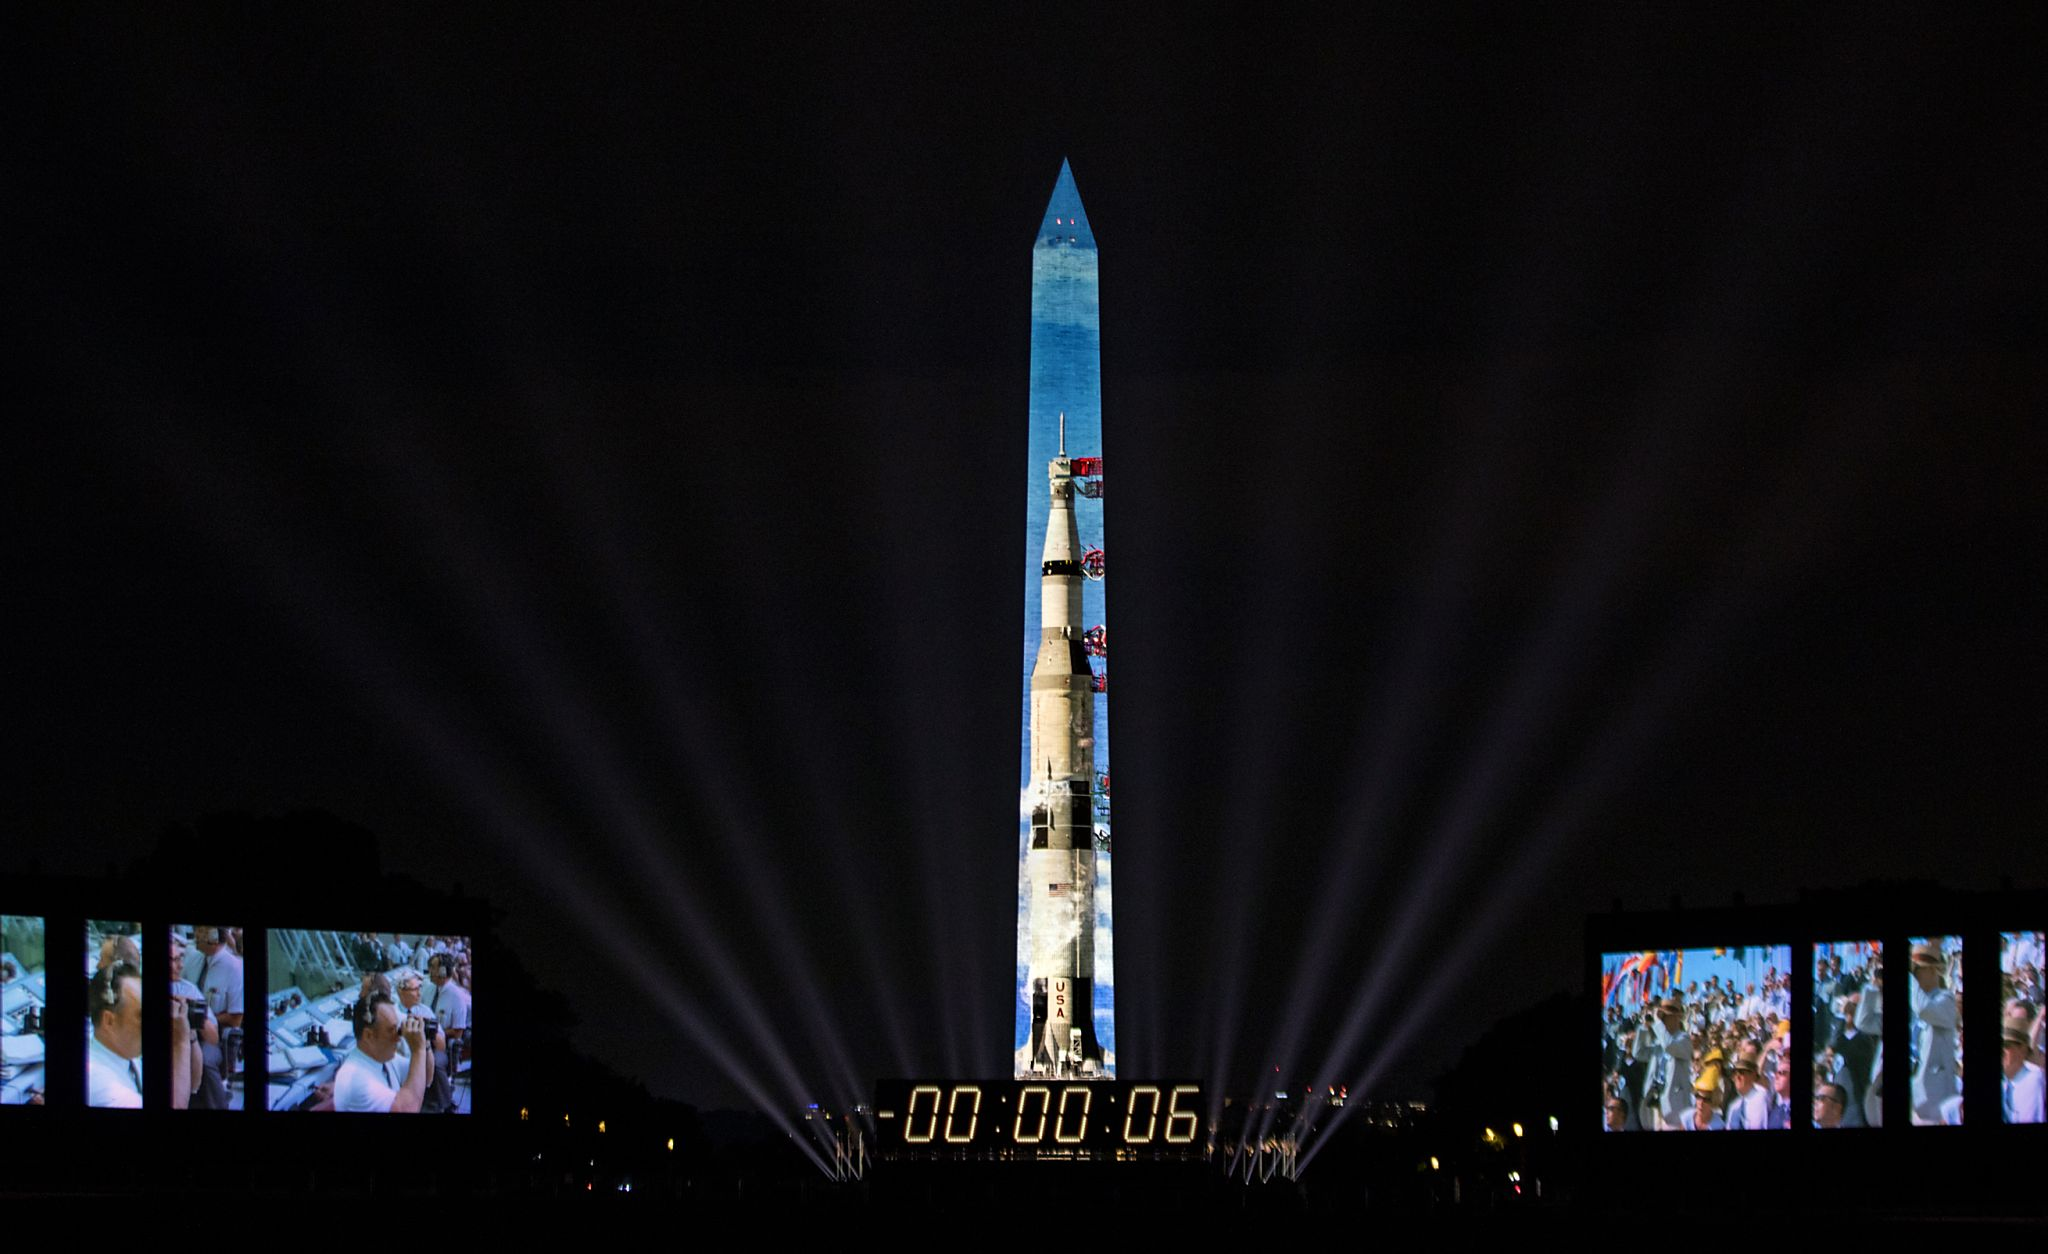 """59 Productions Director Richard Slaney on Staging """"Apollo 50: Go for the Moon"""" in Washington, D.C."""